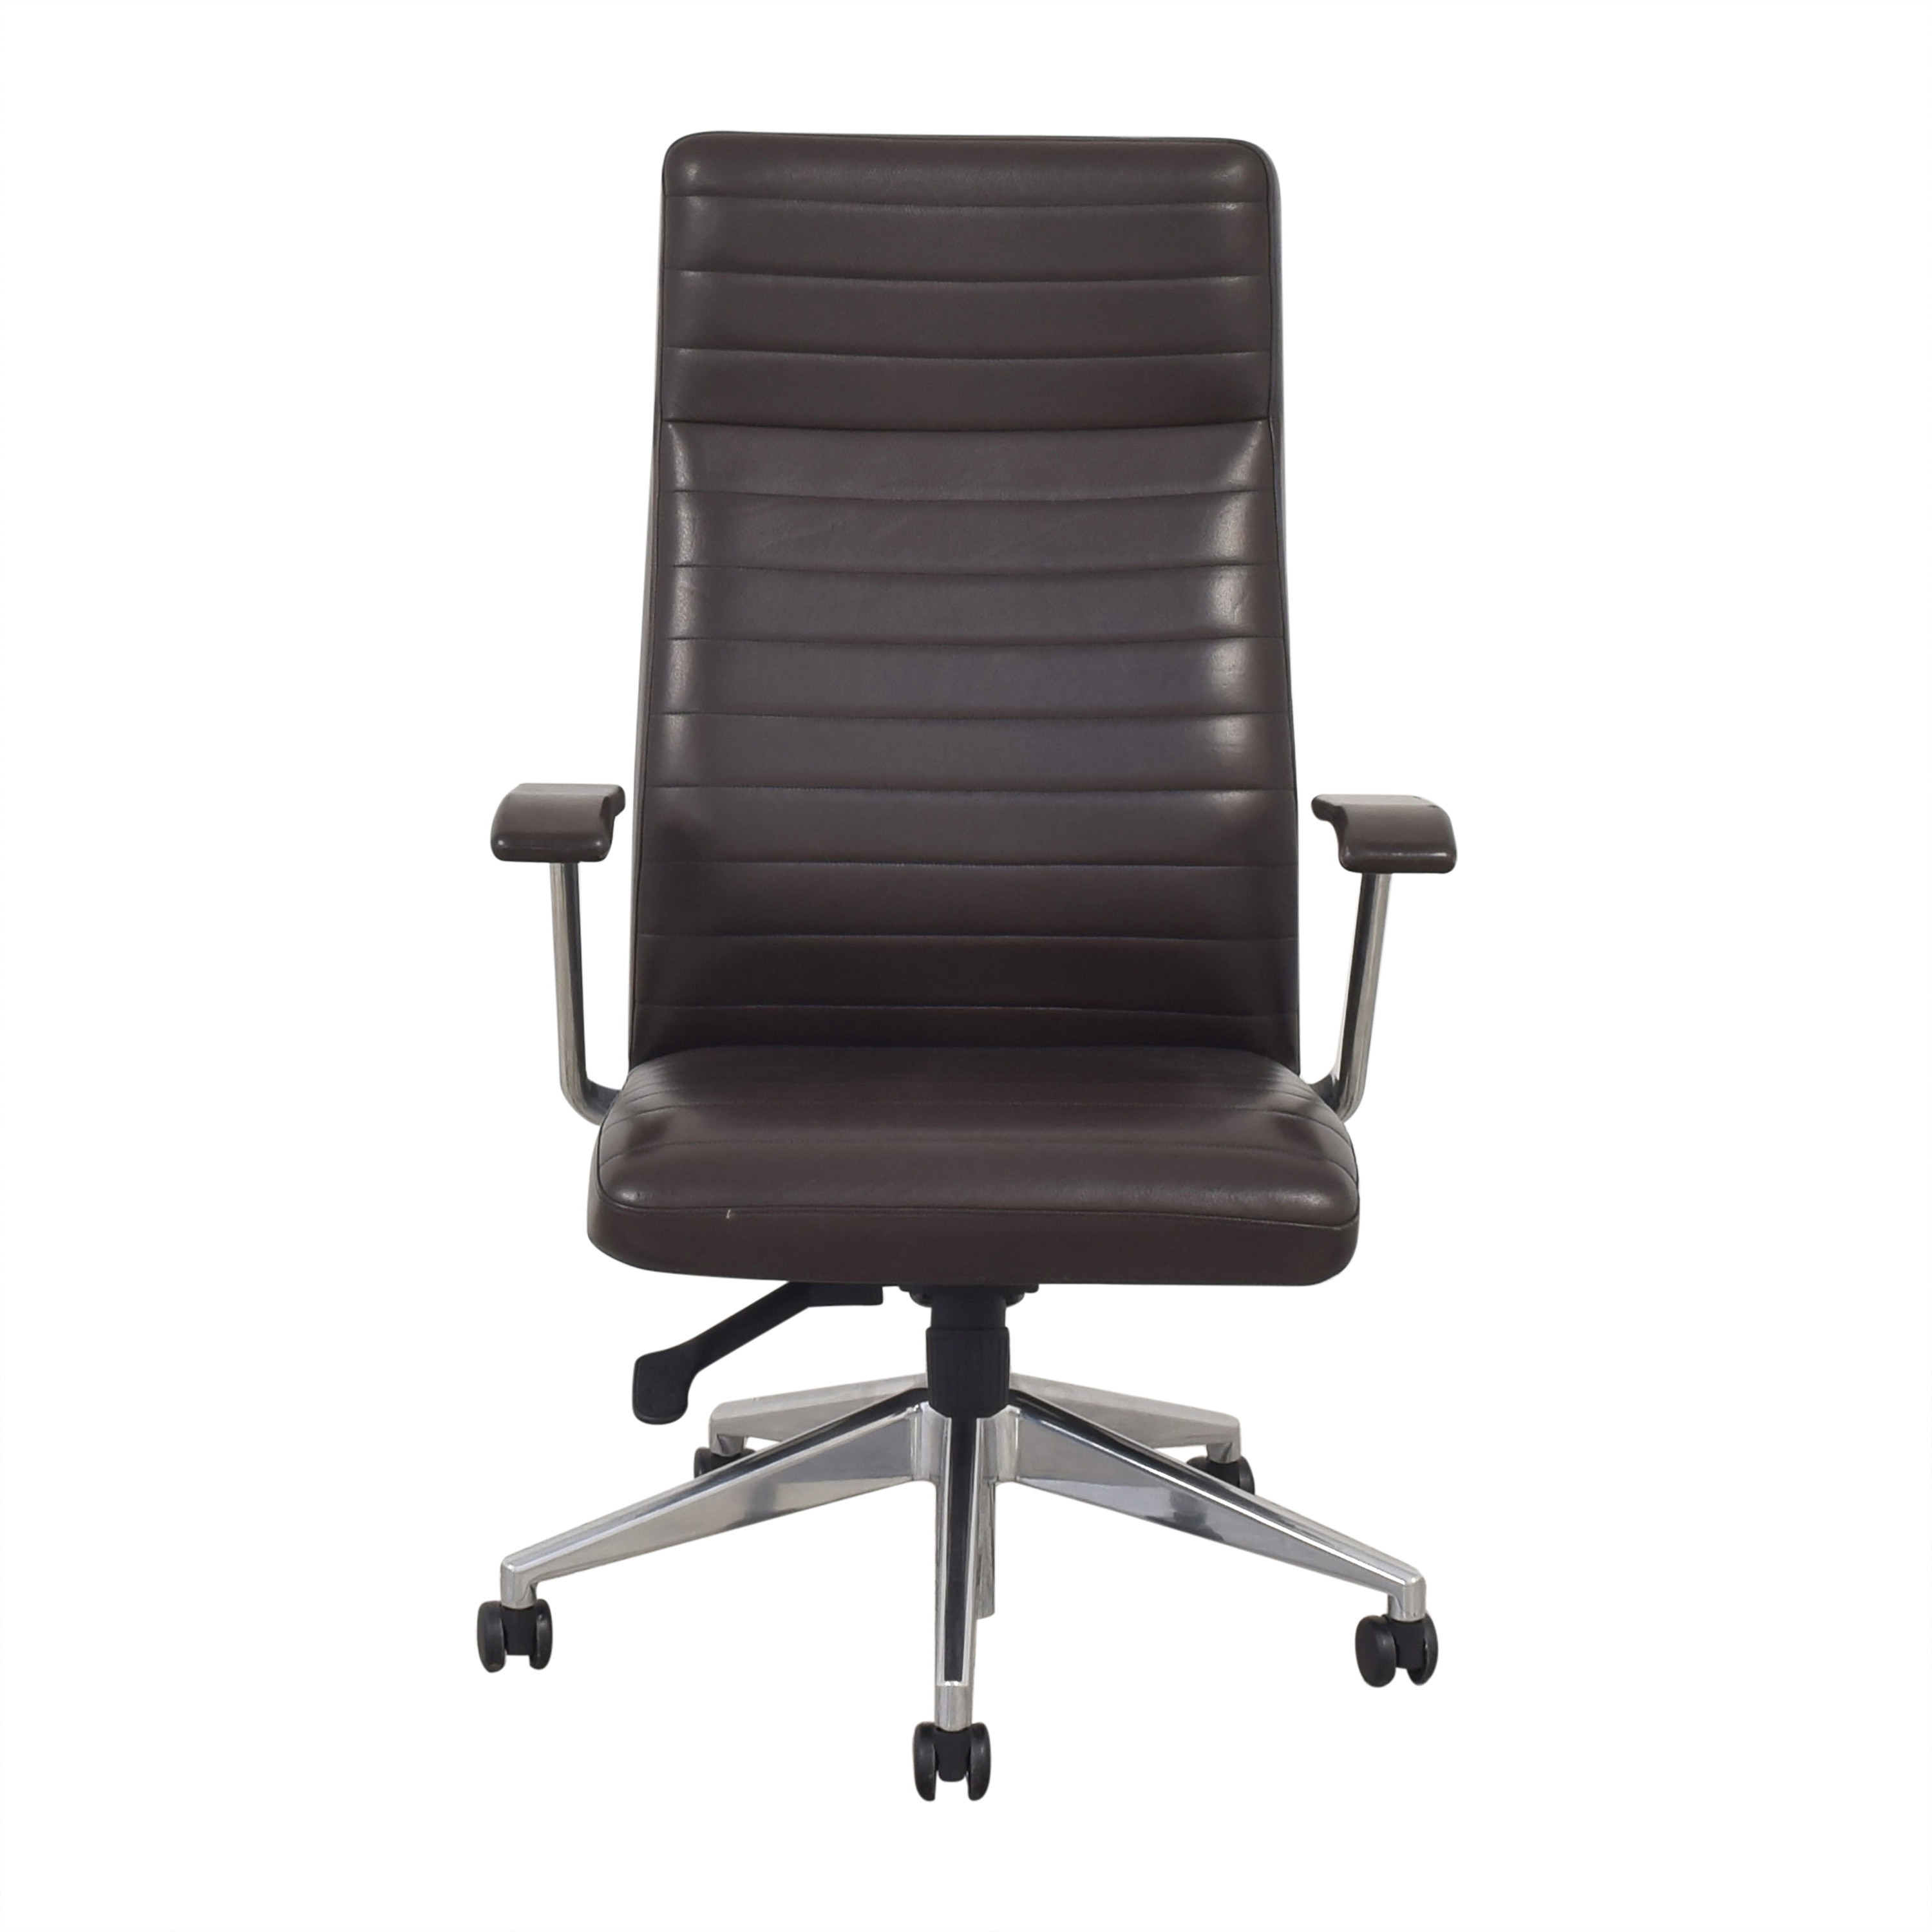 HBF HBF Mode High Back Channel Stitched Swivel Chair coupon